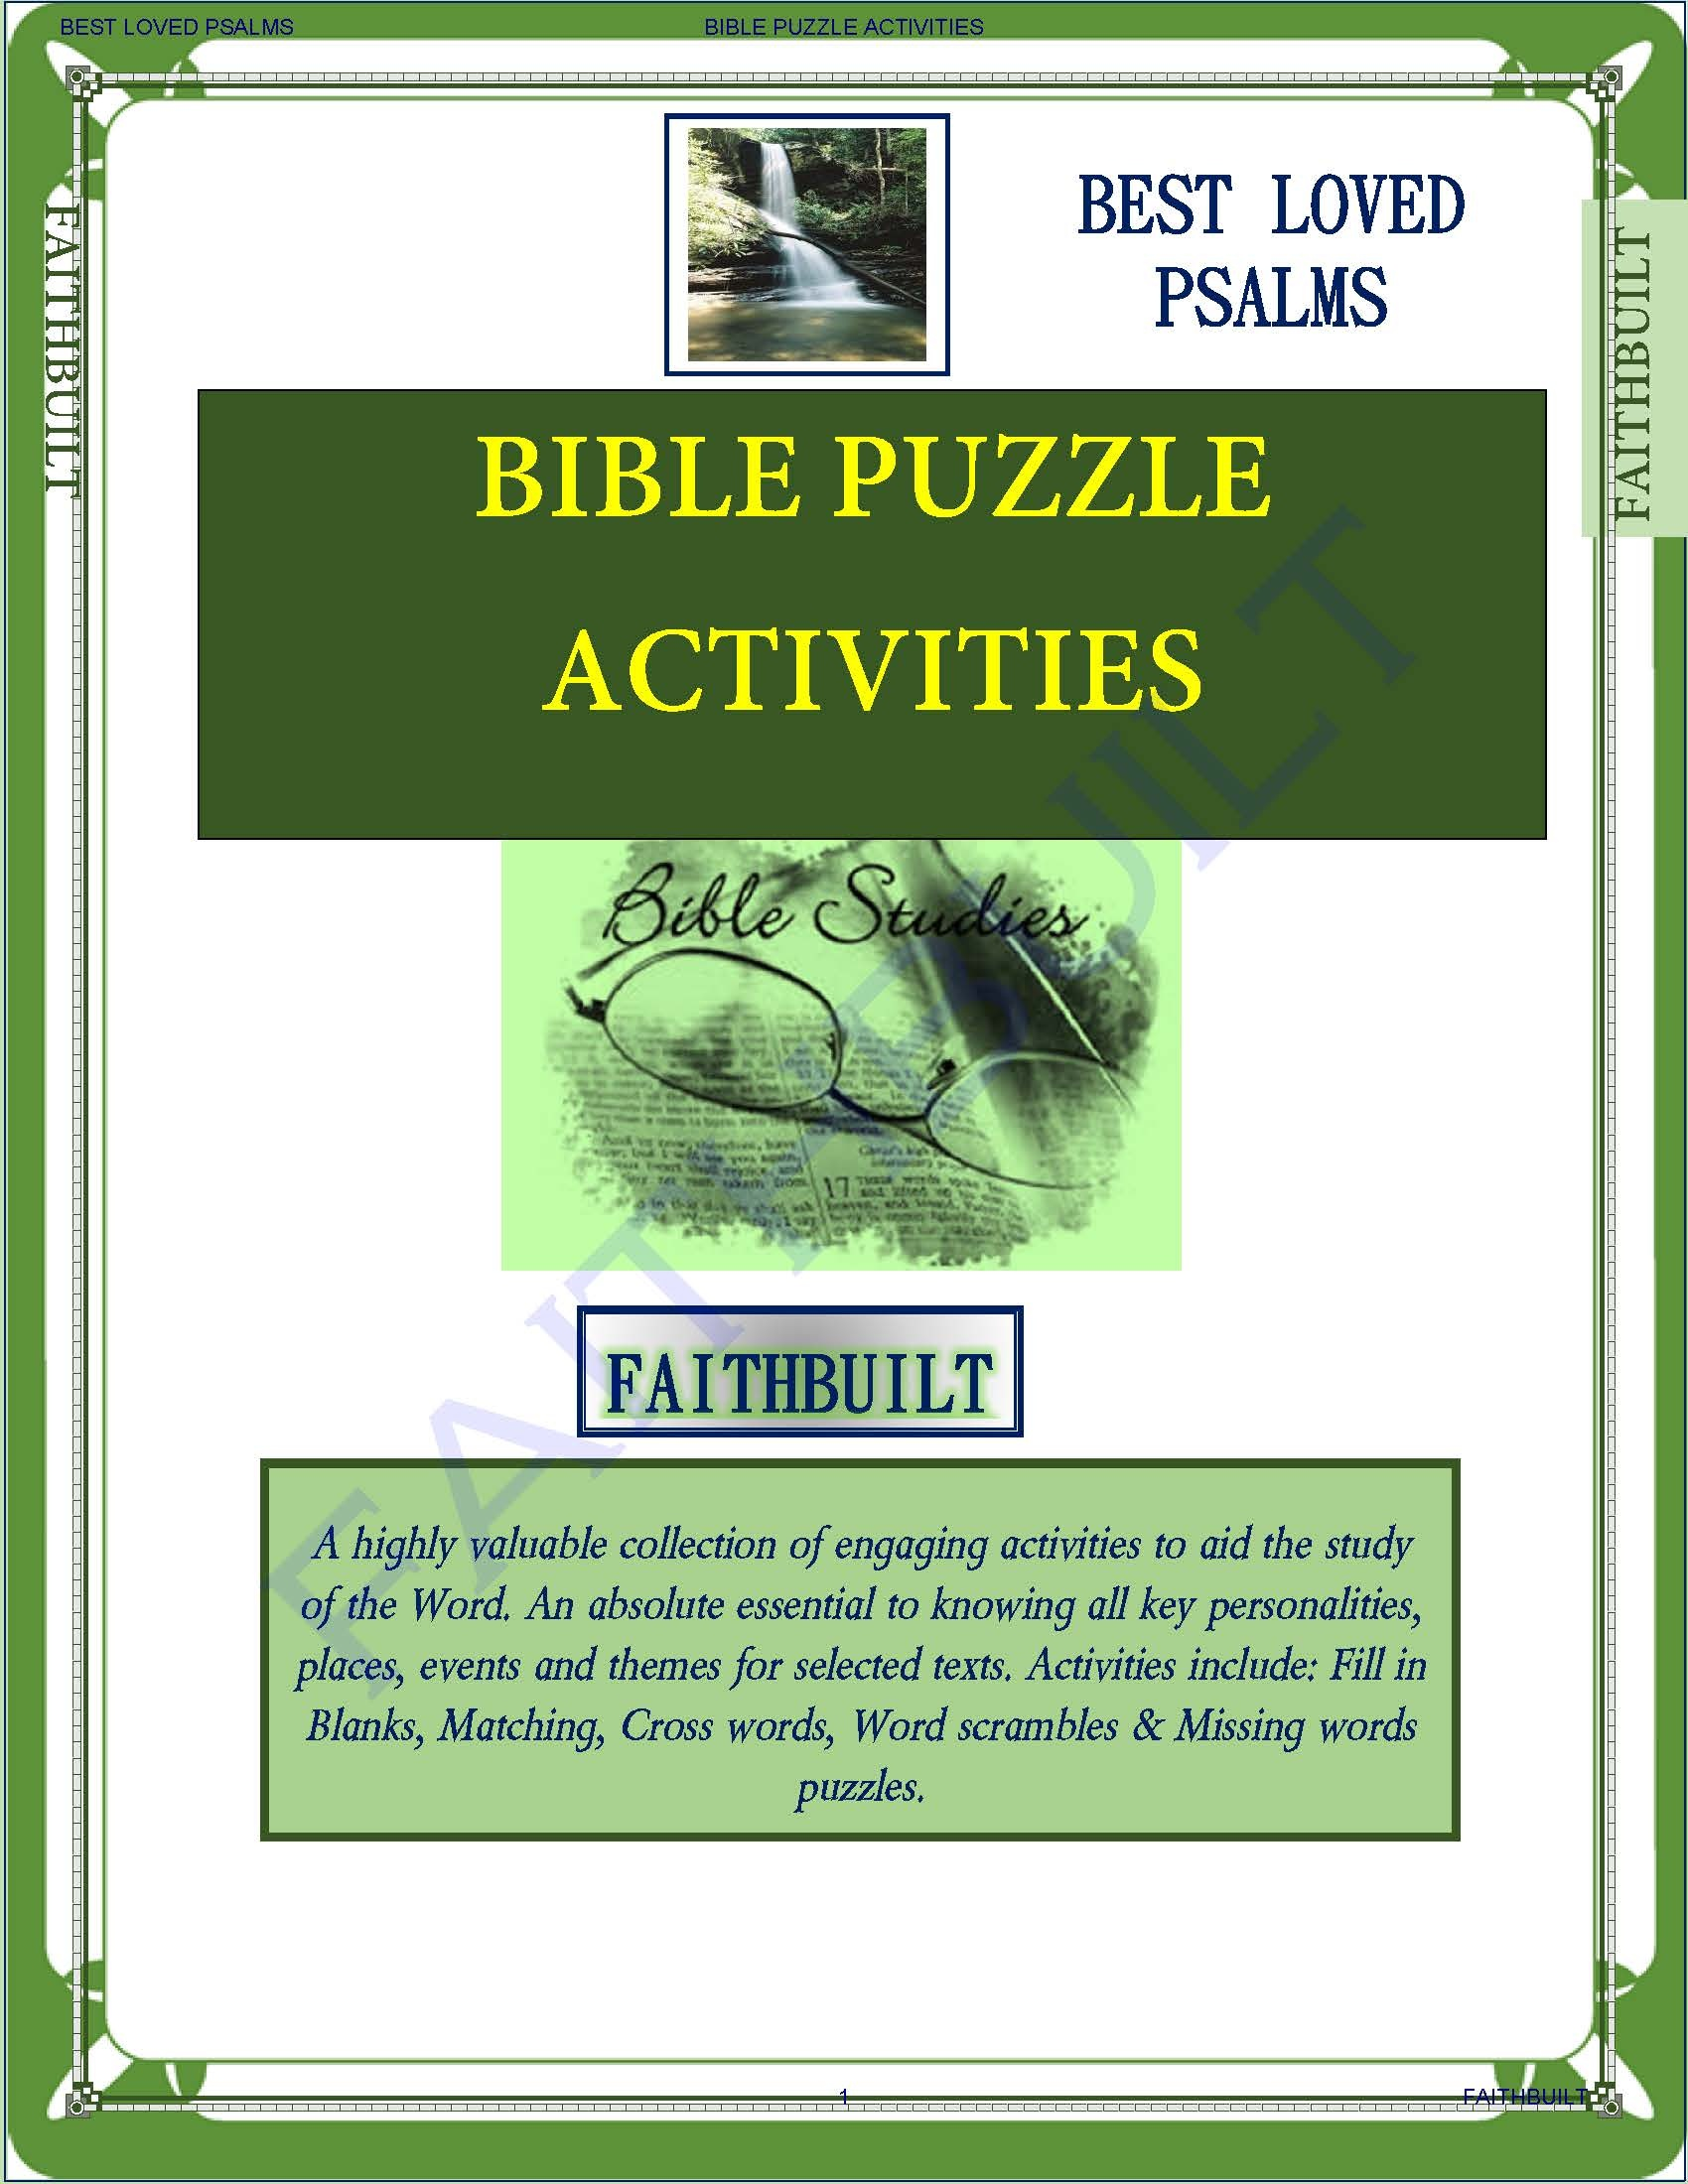 PSALMS: BIBLE PUZZLES AND ACTIVITIES